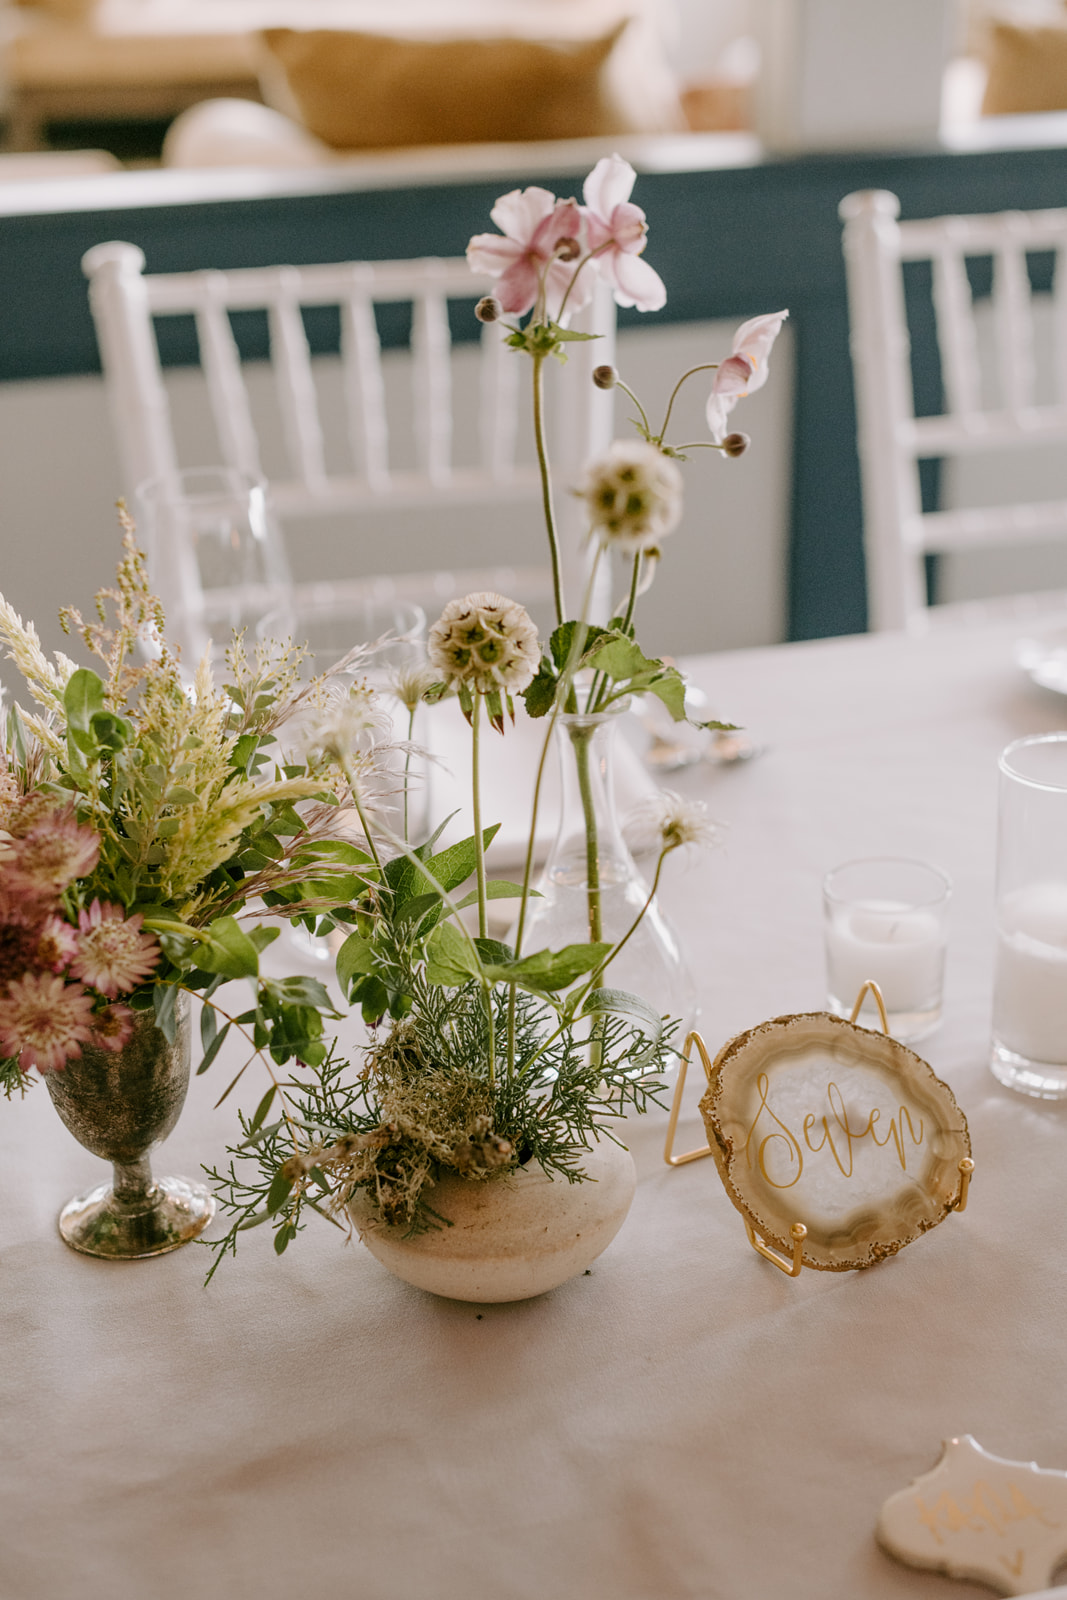 Romantic textural centerpieces by Venn Floral in vase by Nedda Atassi photographed by Kristen Marie Parker.